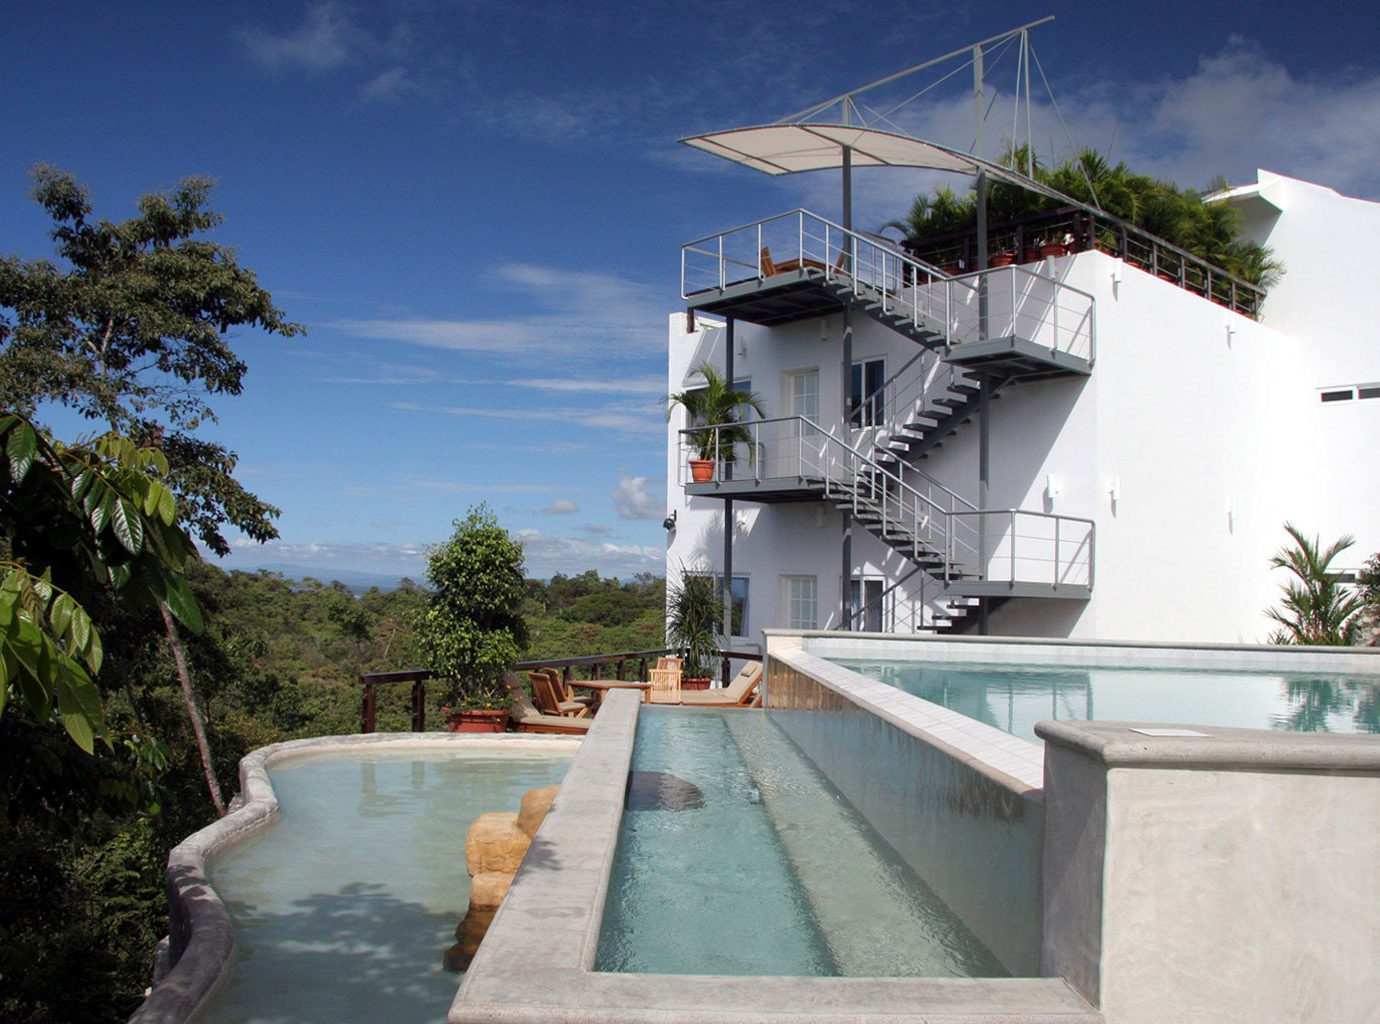 5-Star Adults Only Hotel In Manuel Antonio, Costa Rica - Gaia Hotel